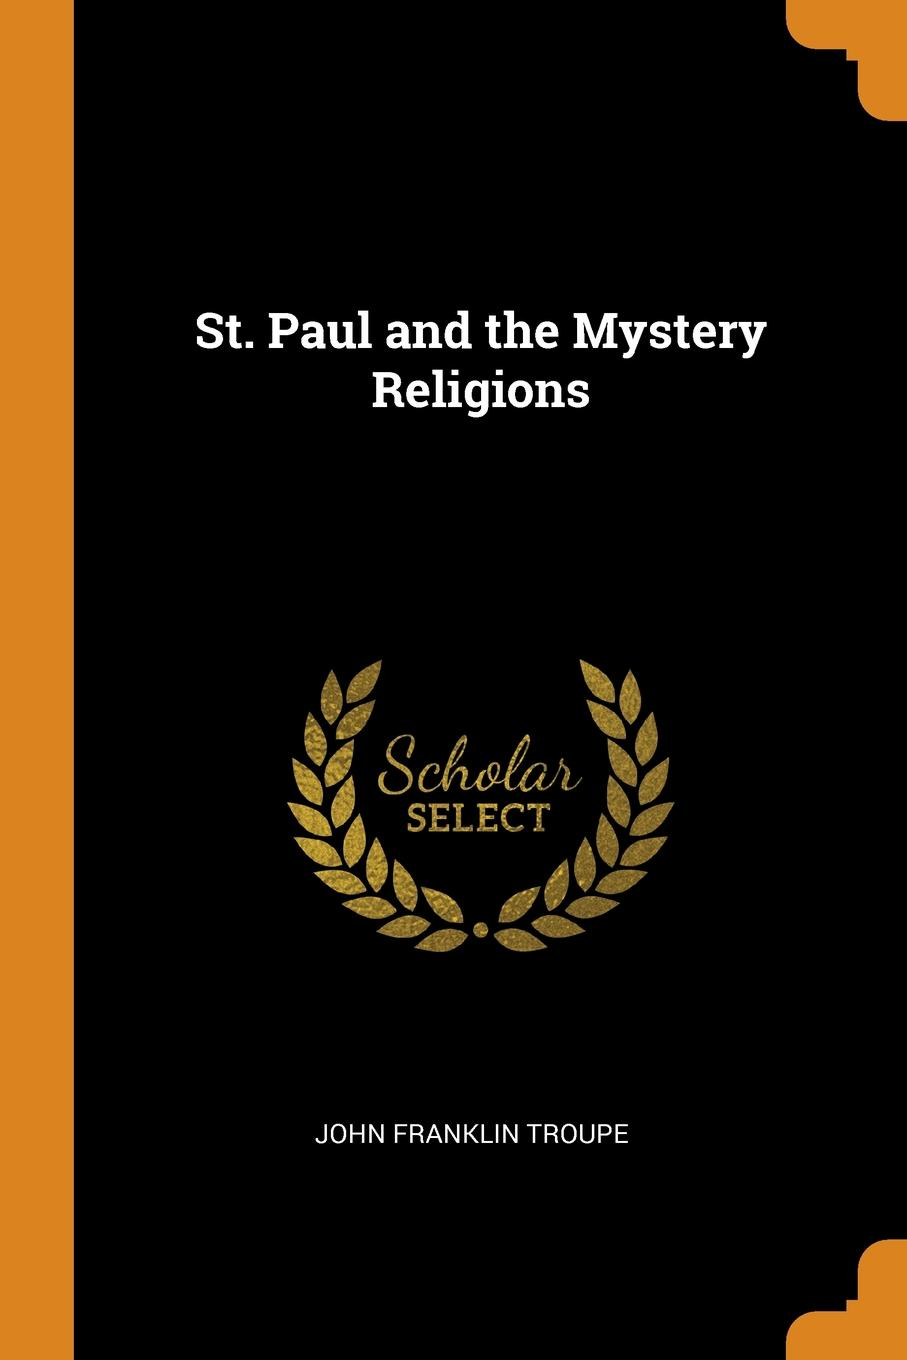 St. Paul and the Mystery Religions. John Franklin Troupe